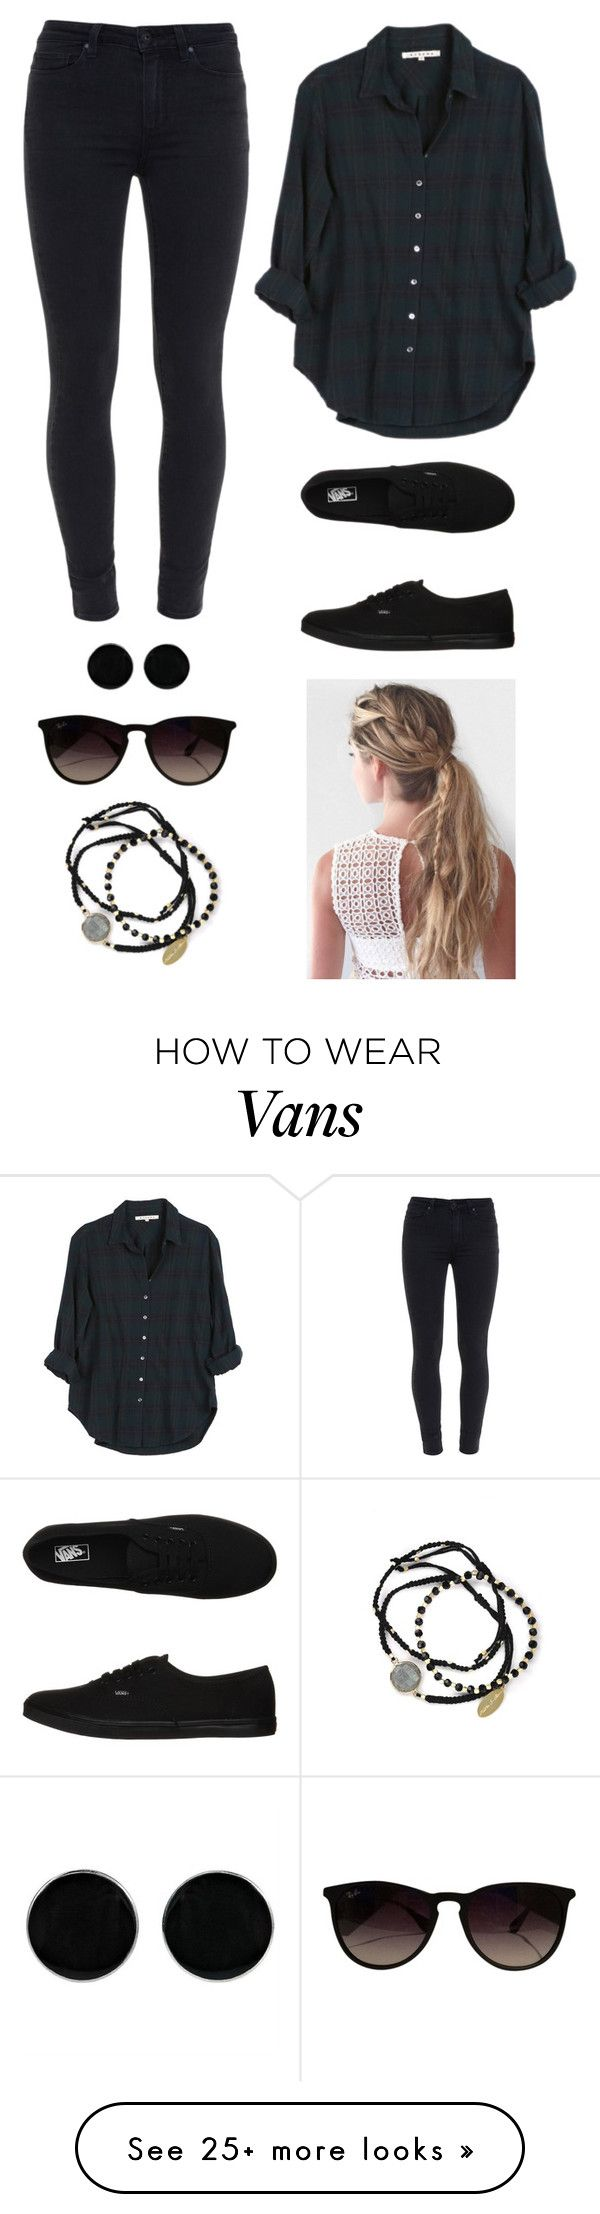 """""""Untitled #2249"""" by twerkinonmaz on Polyvore featuring Xirena, Paige Denim, Vans, AeraVida, Ray-Ban and Feather & Stone"""